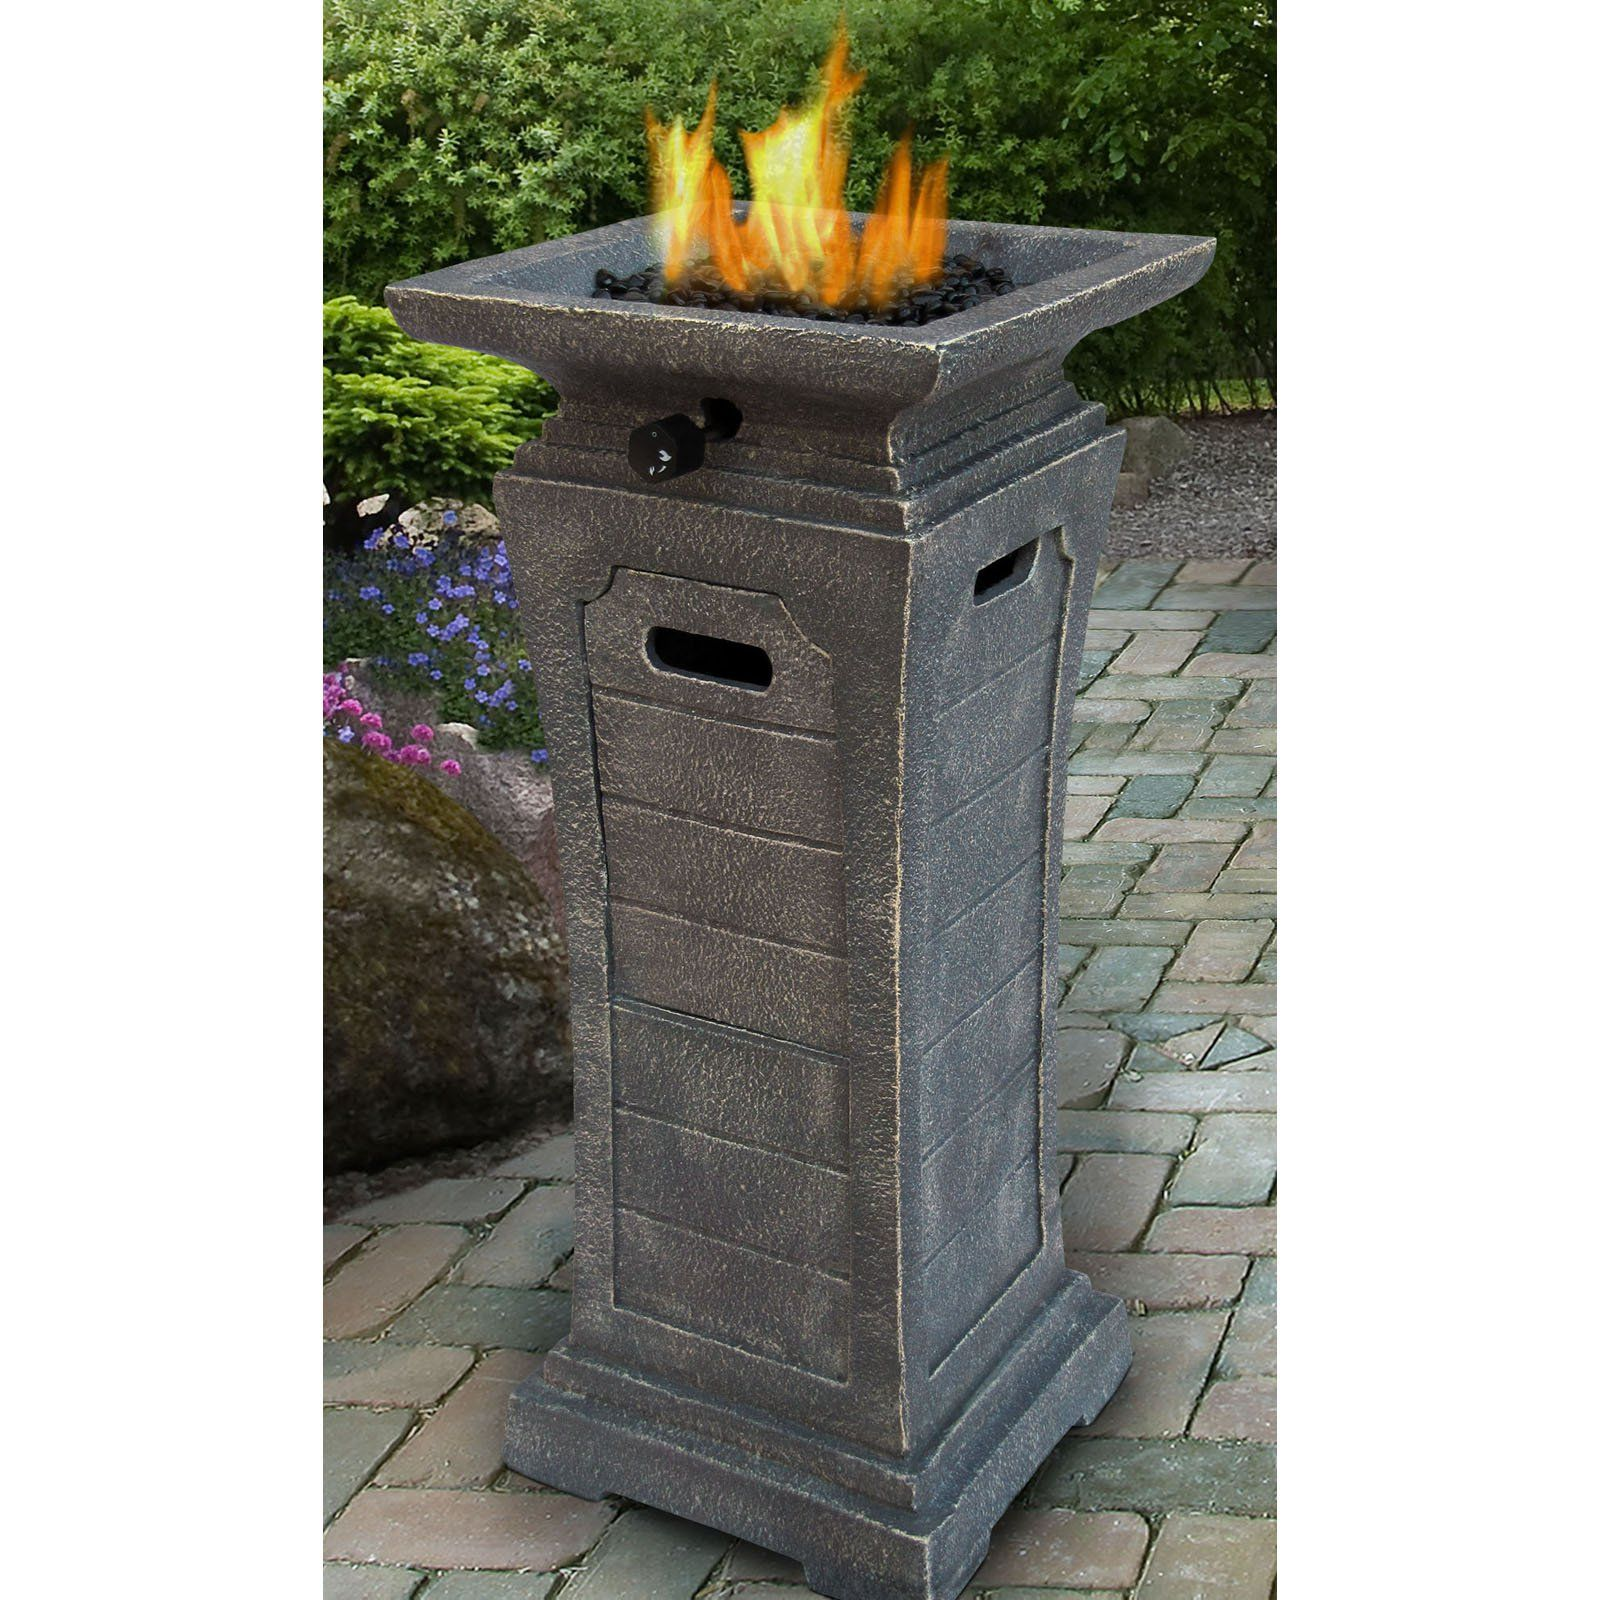 459dfa53ba8dd10ad94eeb2e6bddc95c Top Result 50 Awesome Fire Pit Store Photography 2018 Hzt6